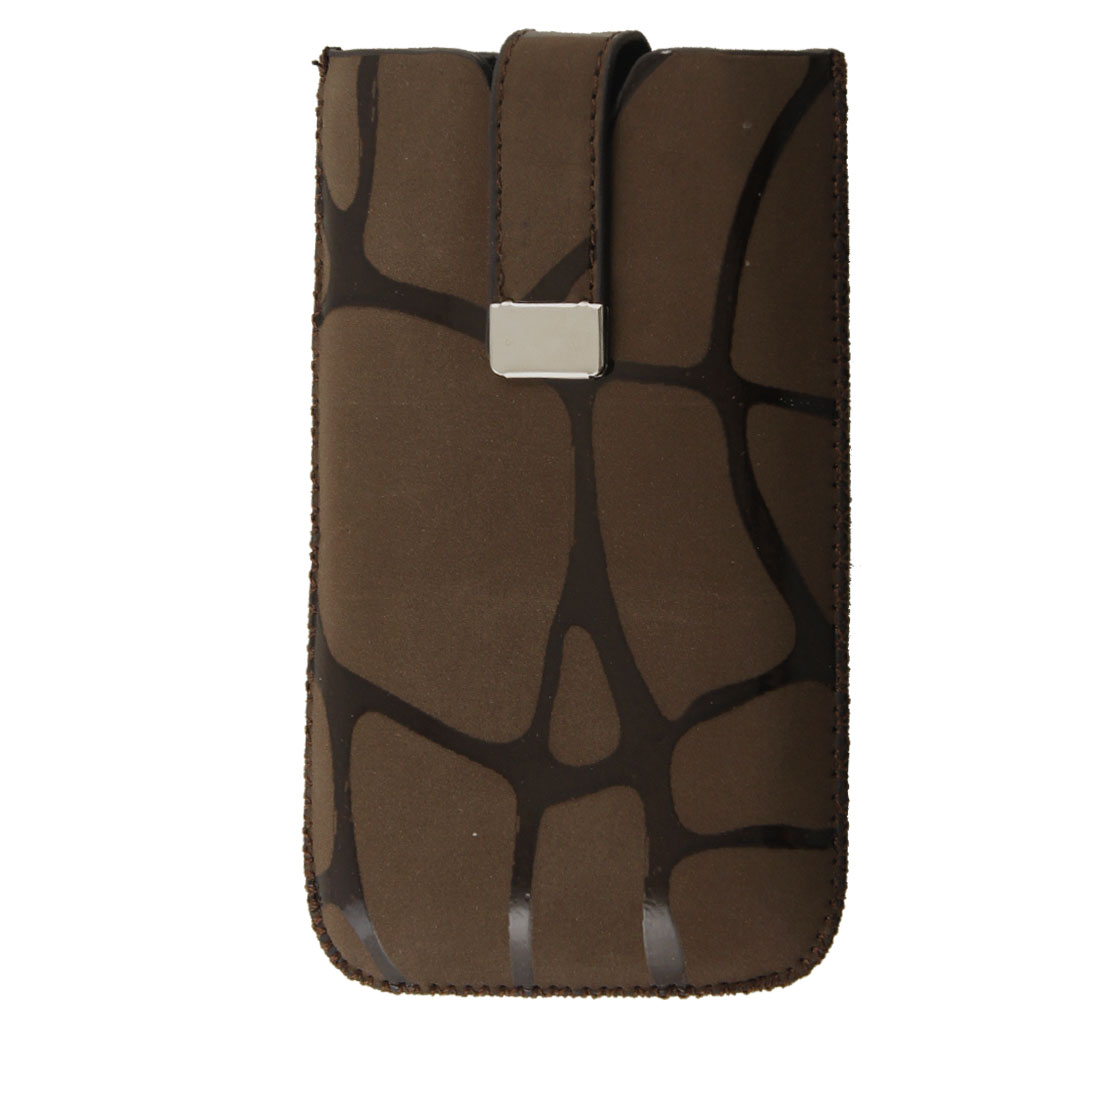 Brown Faux Leather Giraffe Pattern Pouch for Apple iPhone 4 4G 4S